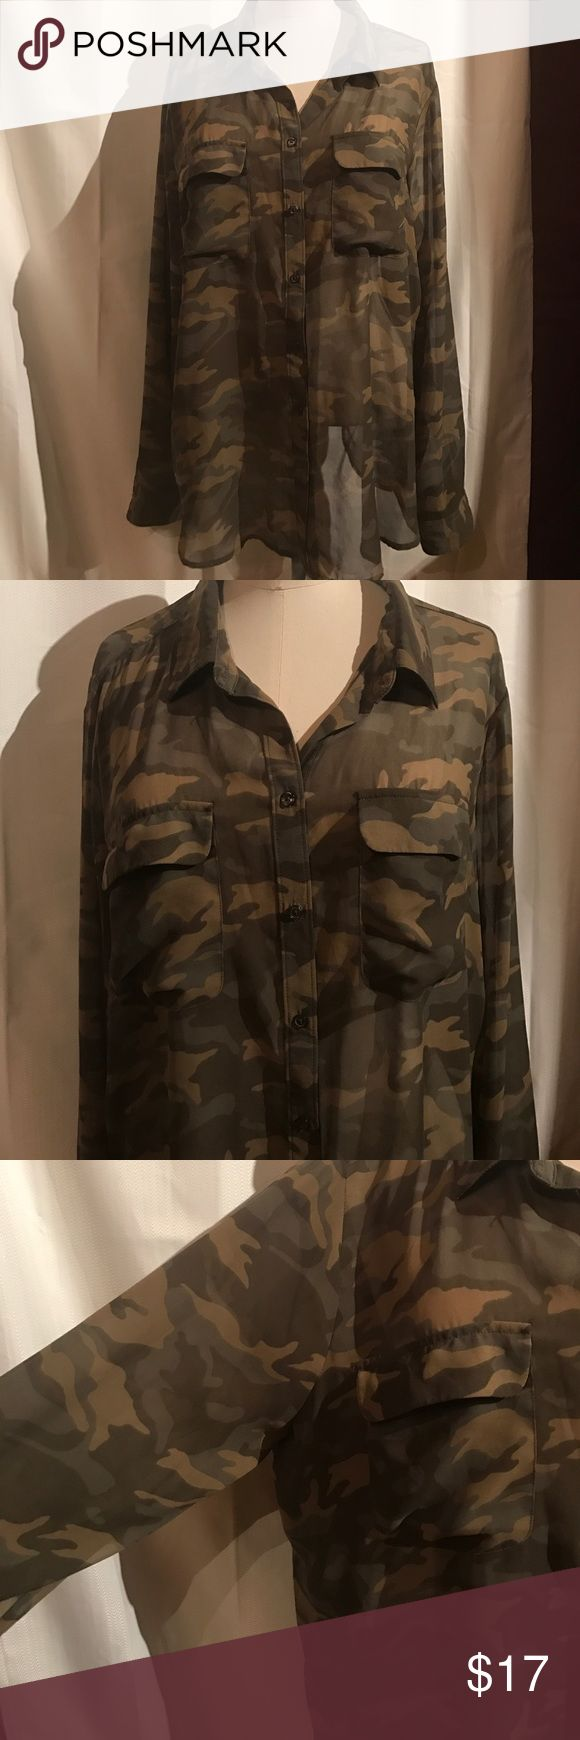 Sheer Camo/Camouflage top XL Sheer Camo/Camouflage top XL. Great for spring and summer. Old Navy Tops